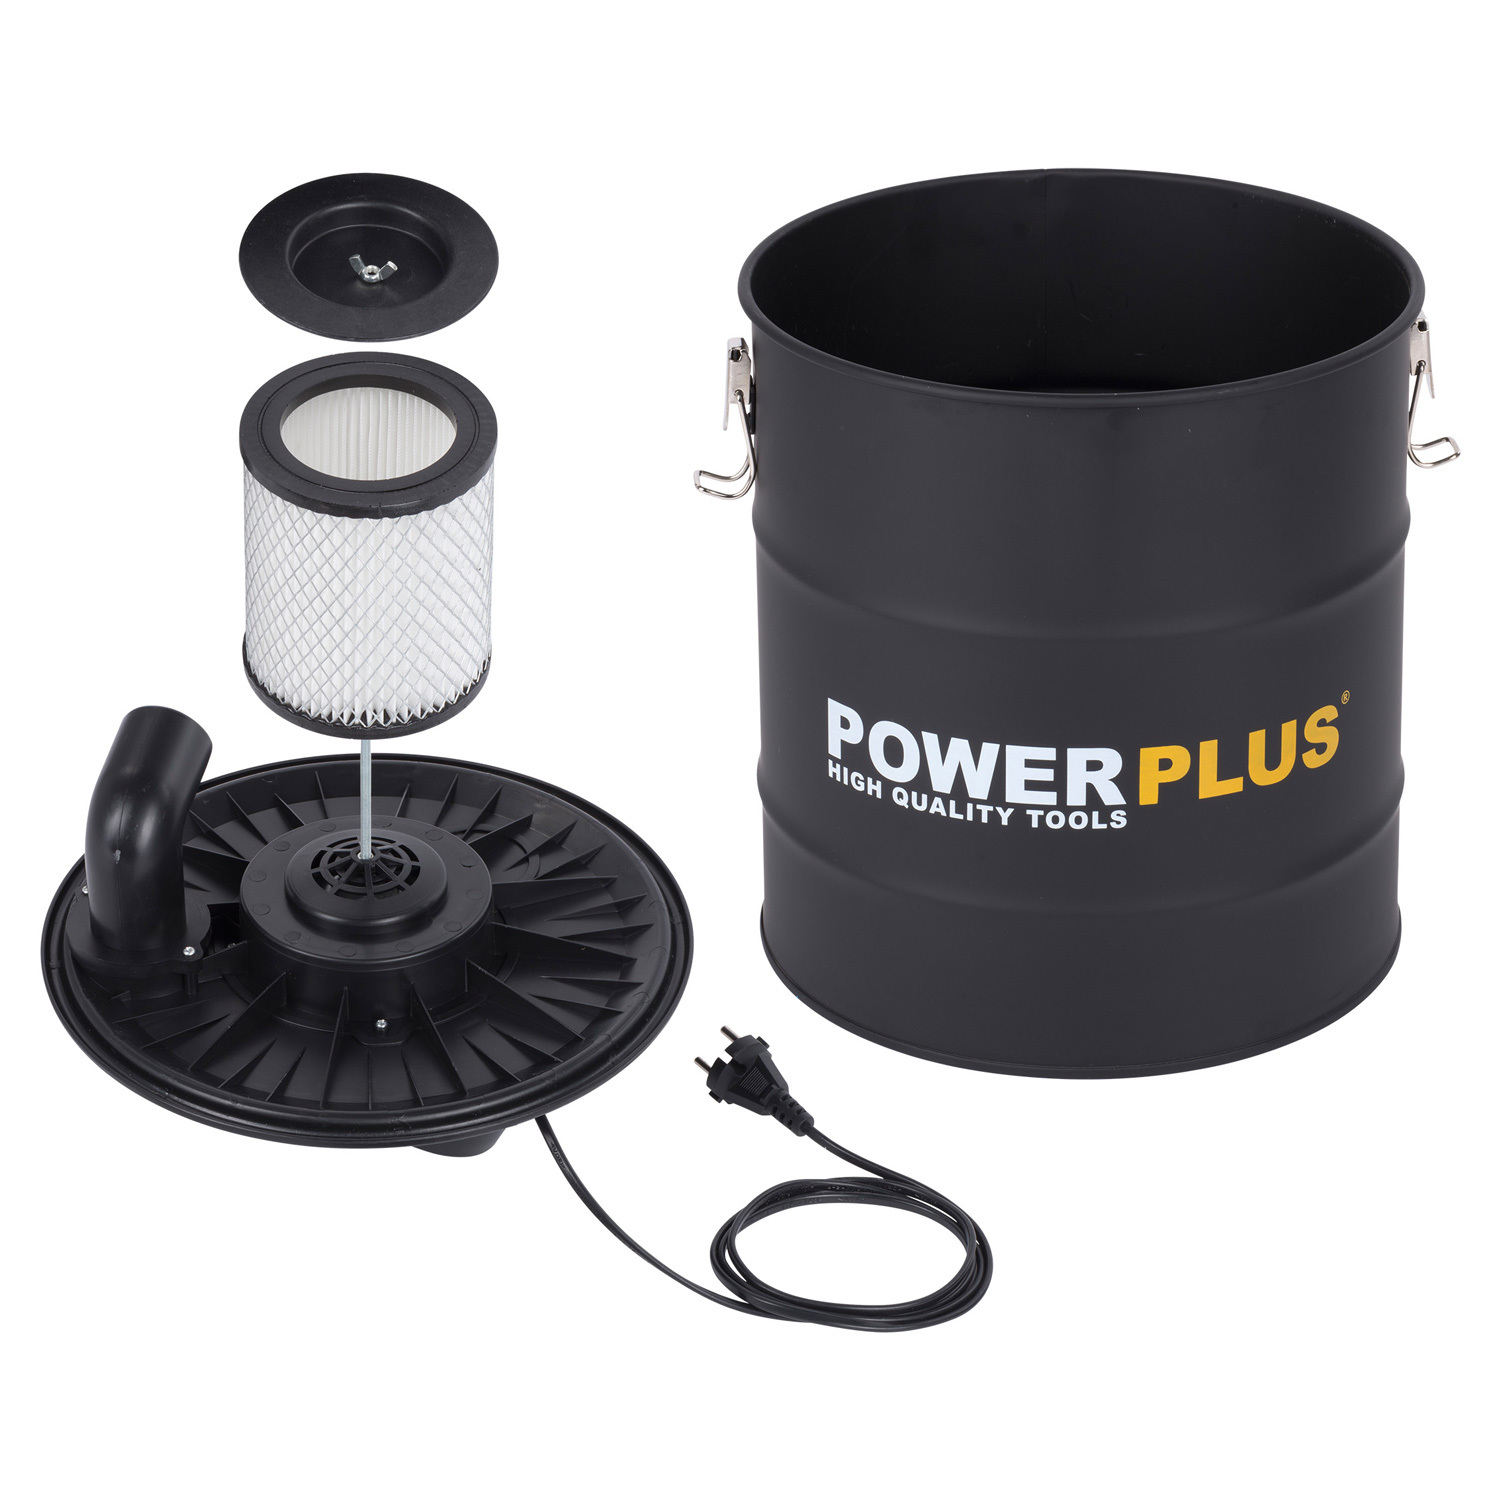 powerplus sauger aschesauger 1200 w staubsauger. Black Bedroom Furniture Sets. Home Design Ideas